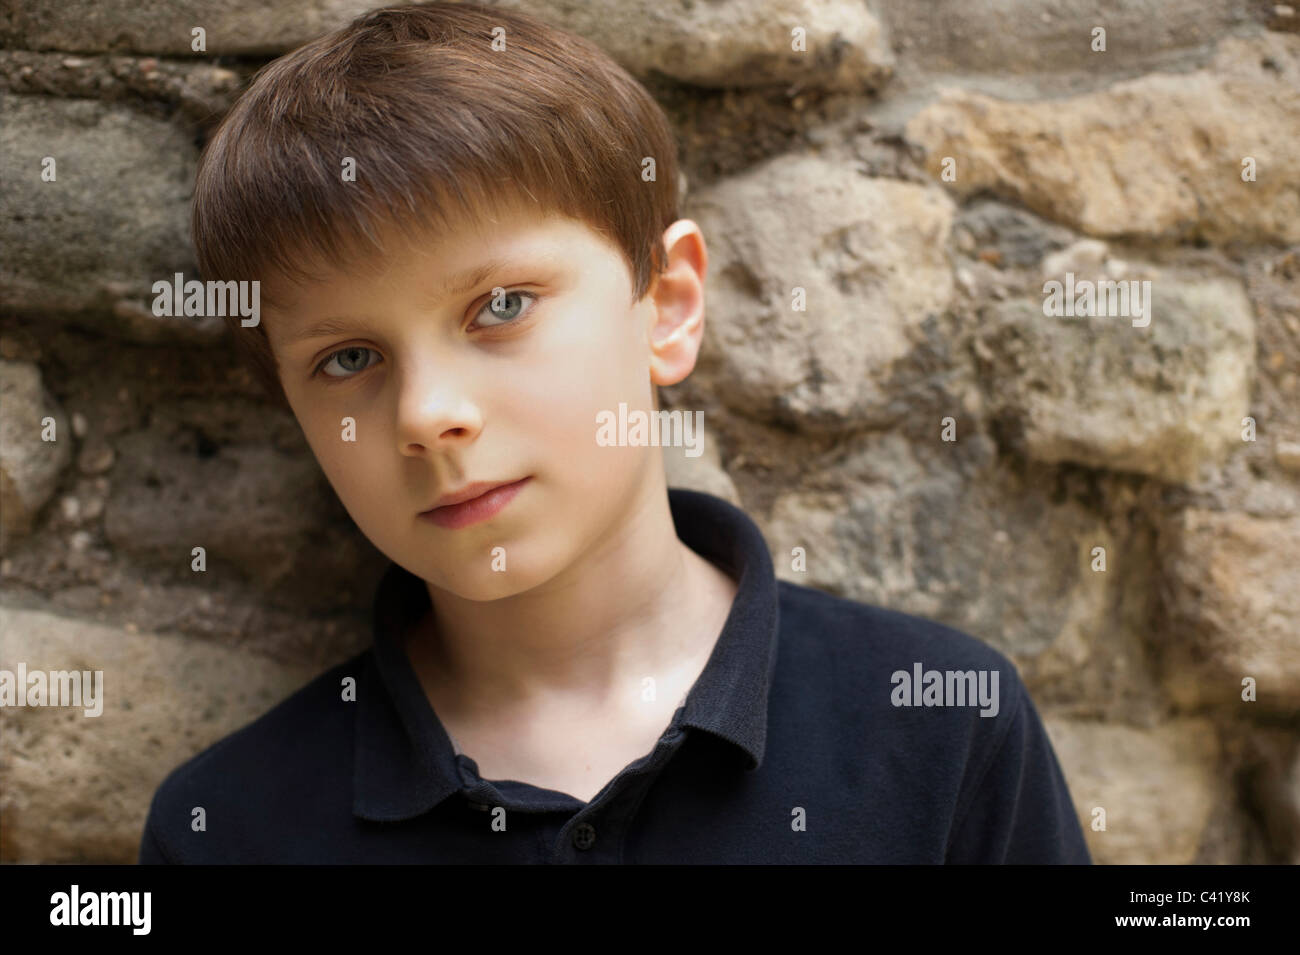 Portrait of a young boy with pale skin, blue eyes and fair hair. - Stock Image